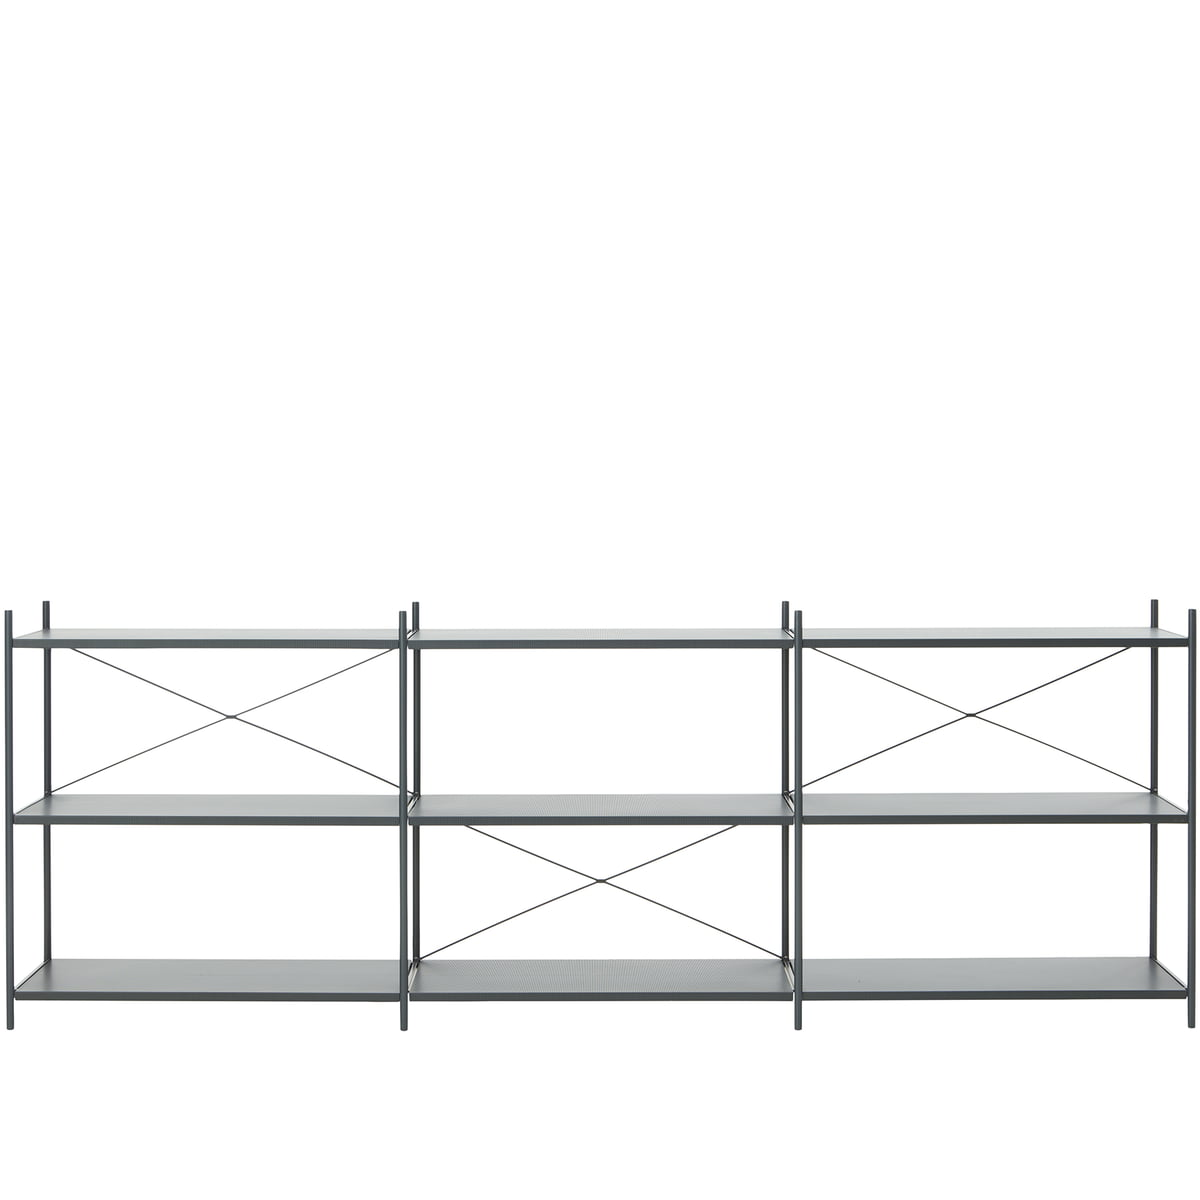 Punctual Shelving System 3x3 By Ferm Living In Dark Blue